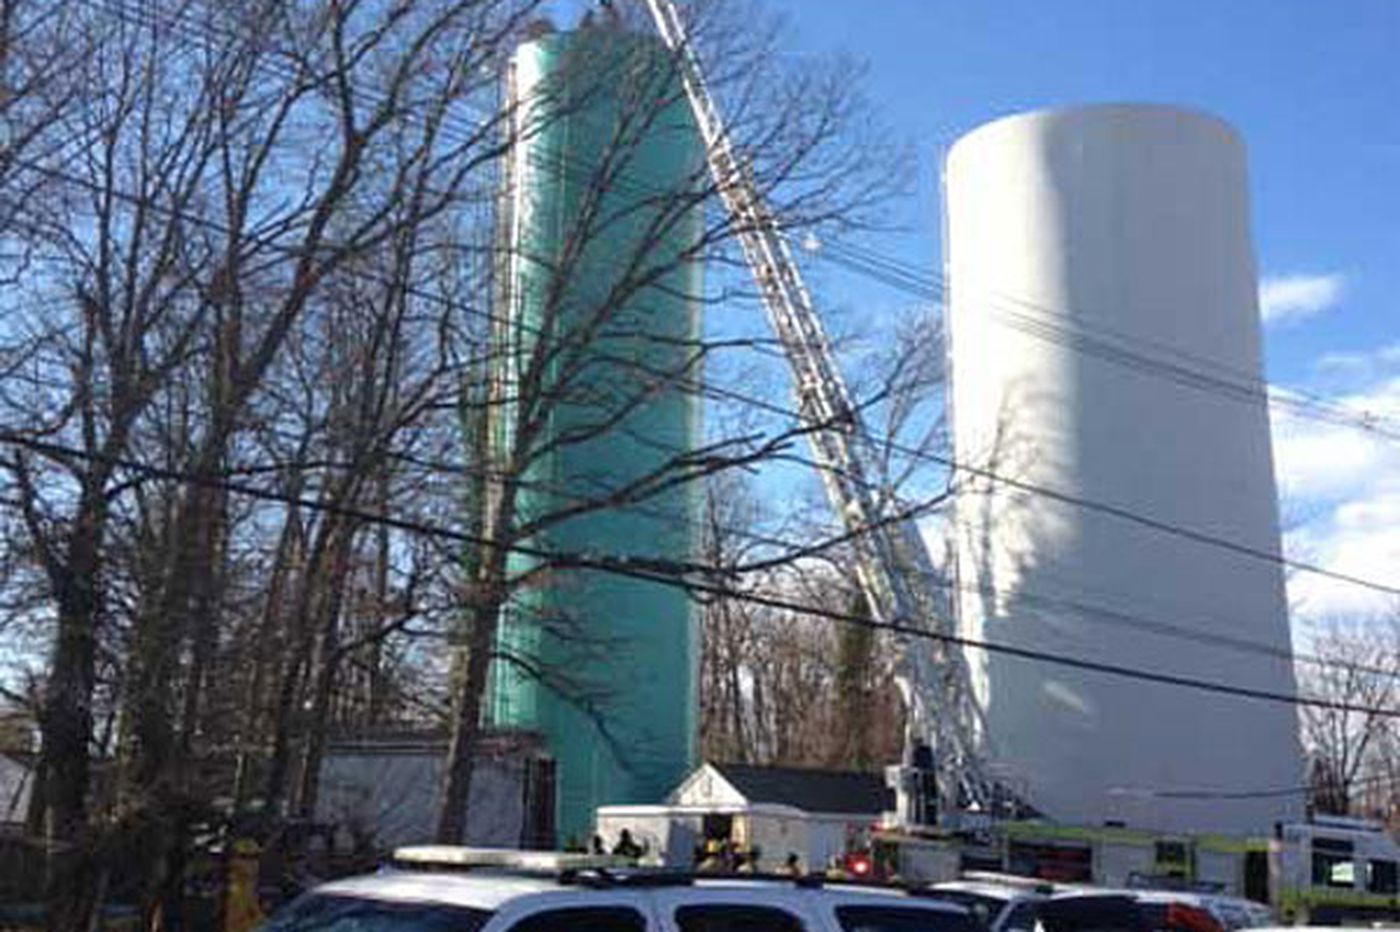 1 dead, 1 rescued in water-tower mishap